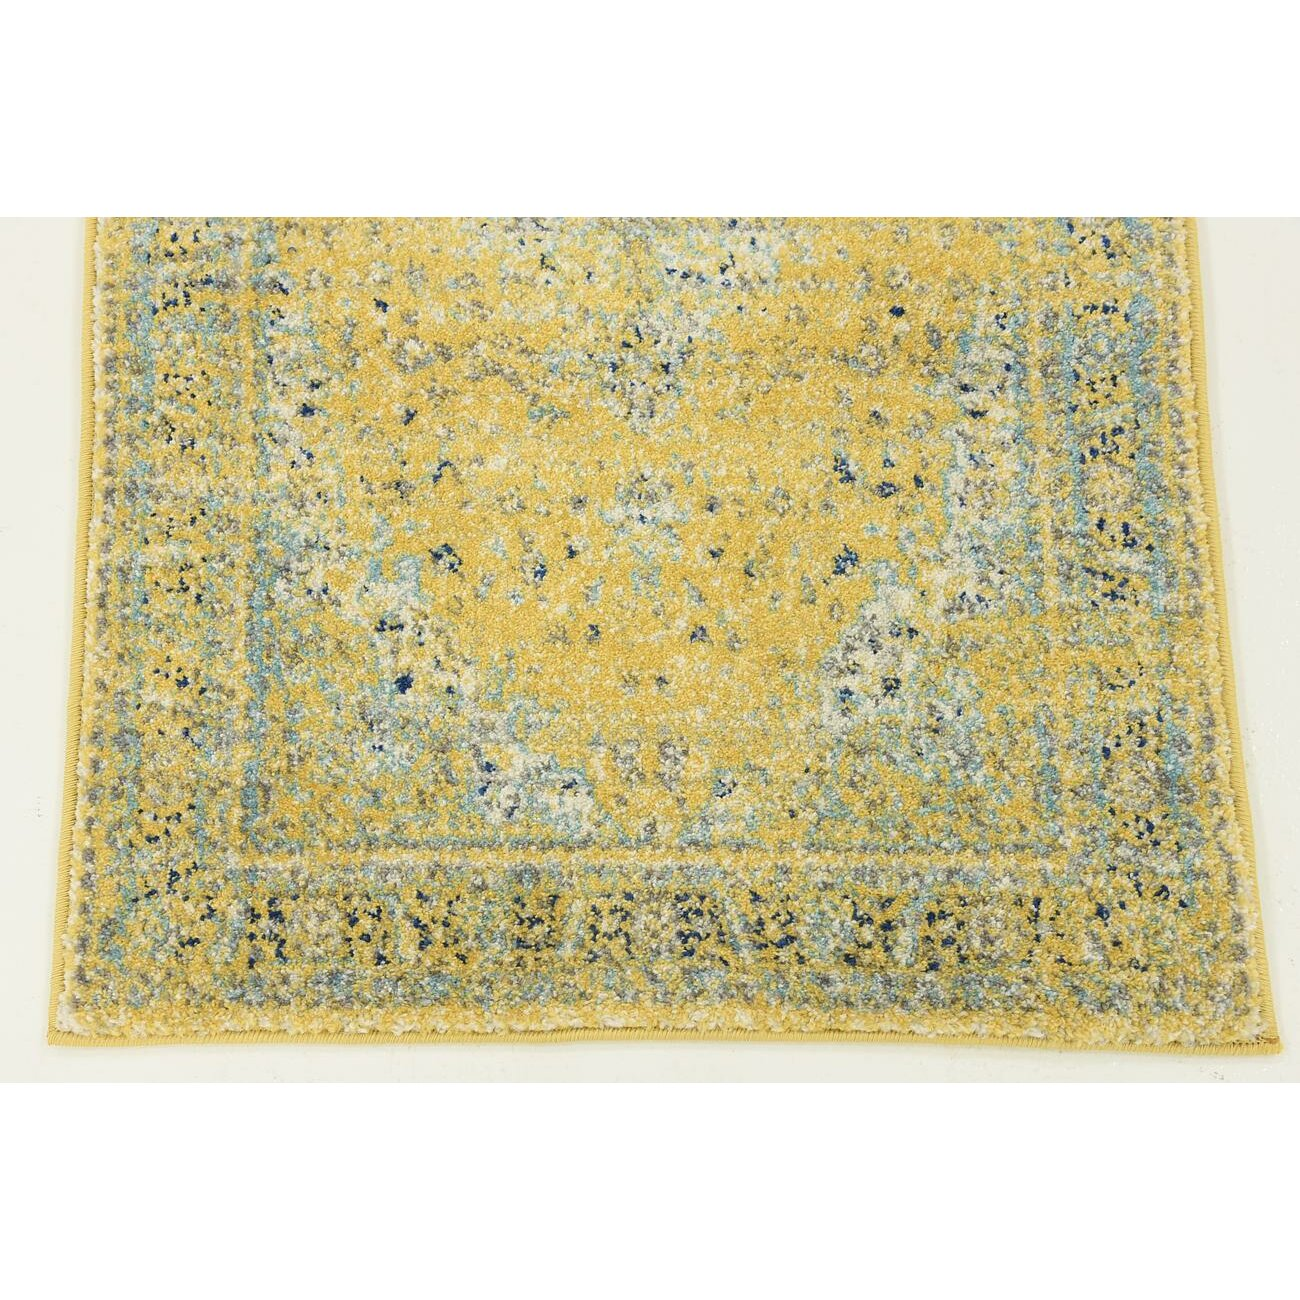 Alcott Hill Marine Yellow Area Rug amp Reviews Wayfair : Alcott Hill Marine Yellow Area Rug ALCT8991 from www.wayfair.com size 1300 x 1300 jpeg 571kB